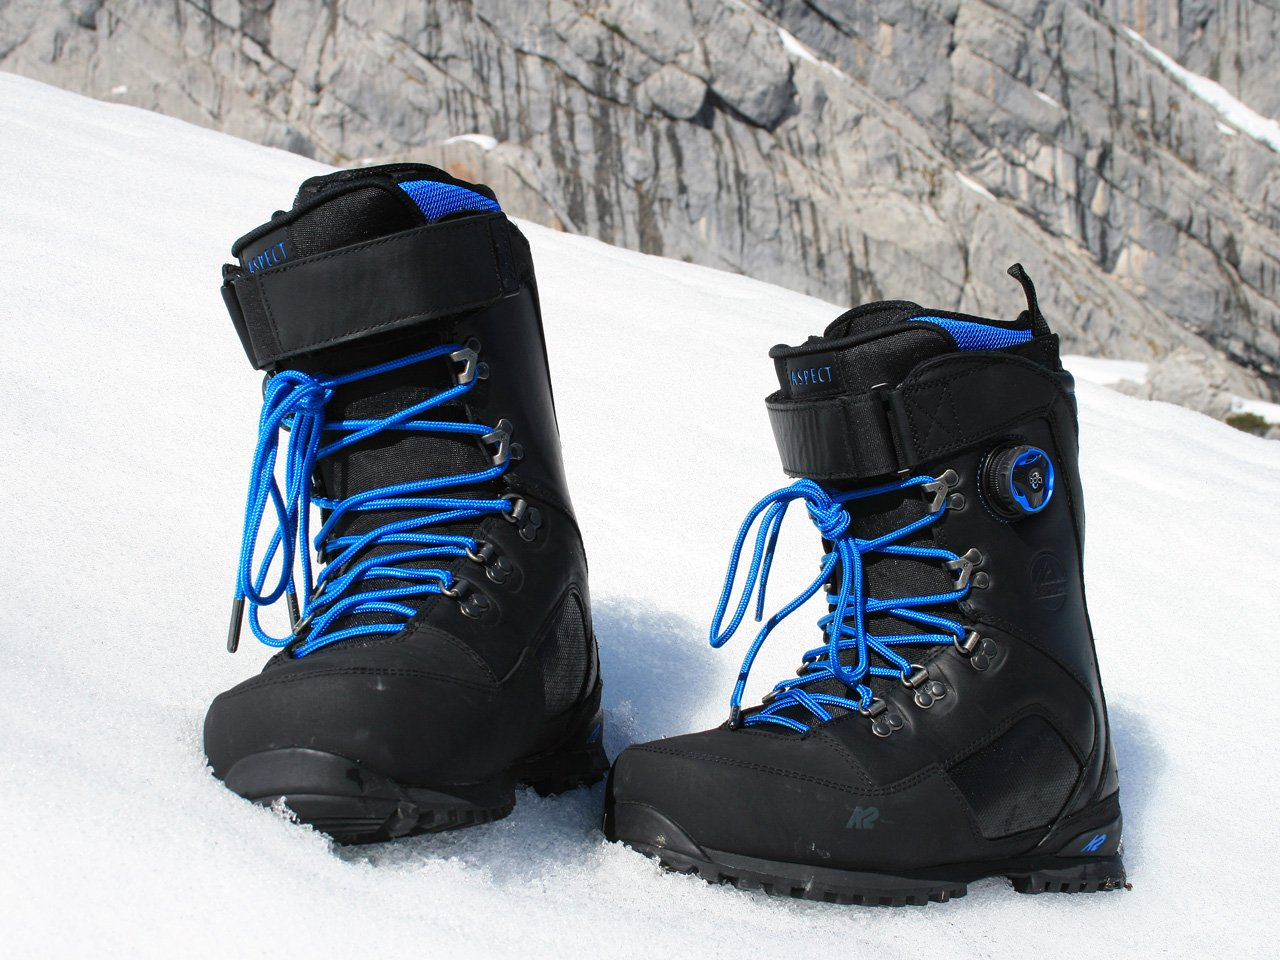 Testbericht –  K2 Aspect Touring Boot: One for all – steigeisenfester Tourenboot mit BOA-Closure-System für Splitboarder